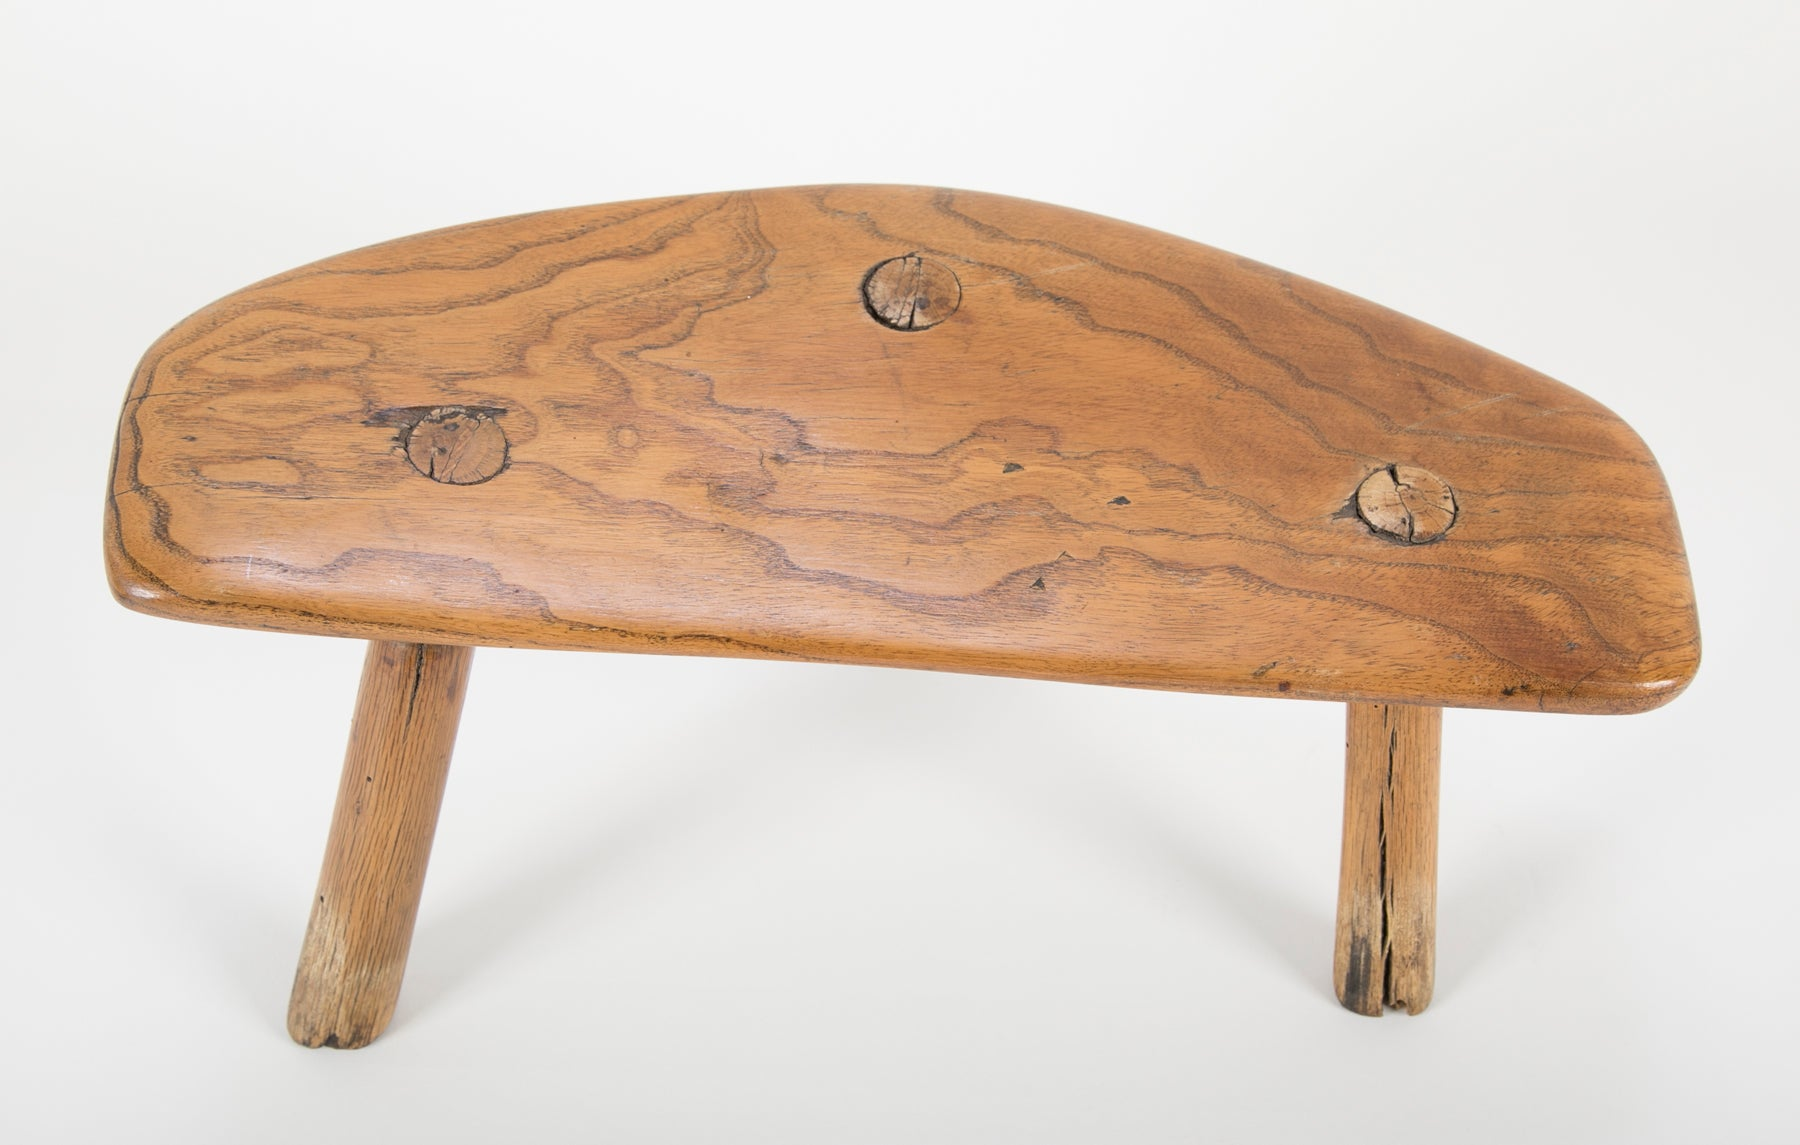 17th Century Handcrafted New England Milking Stool of Black Ash